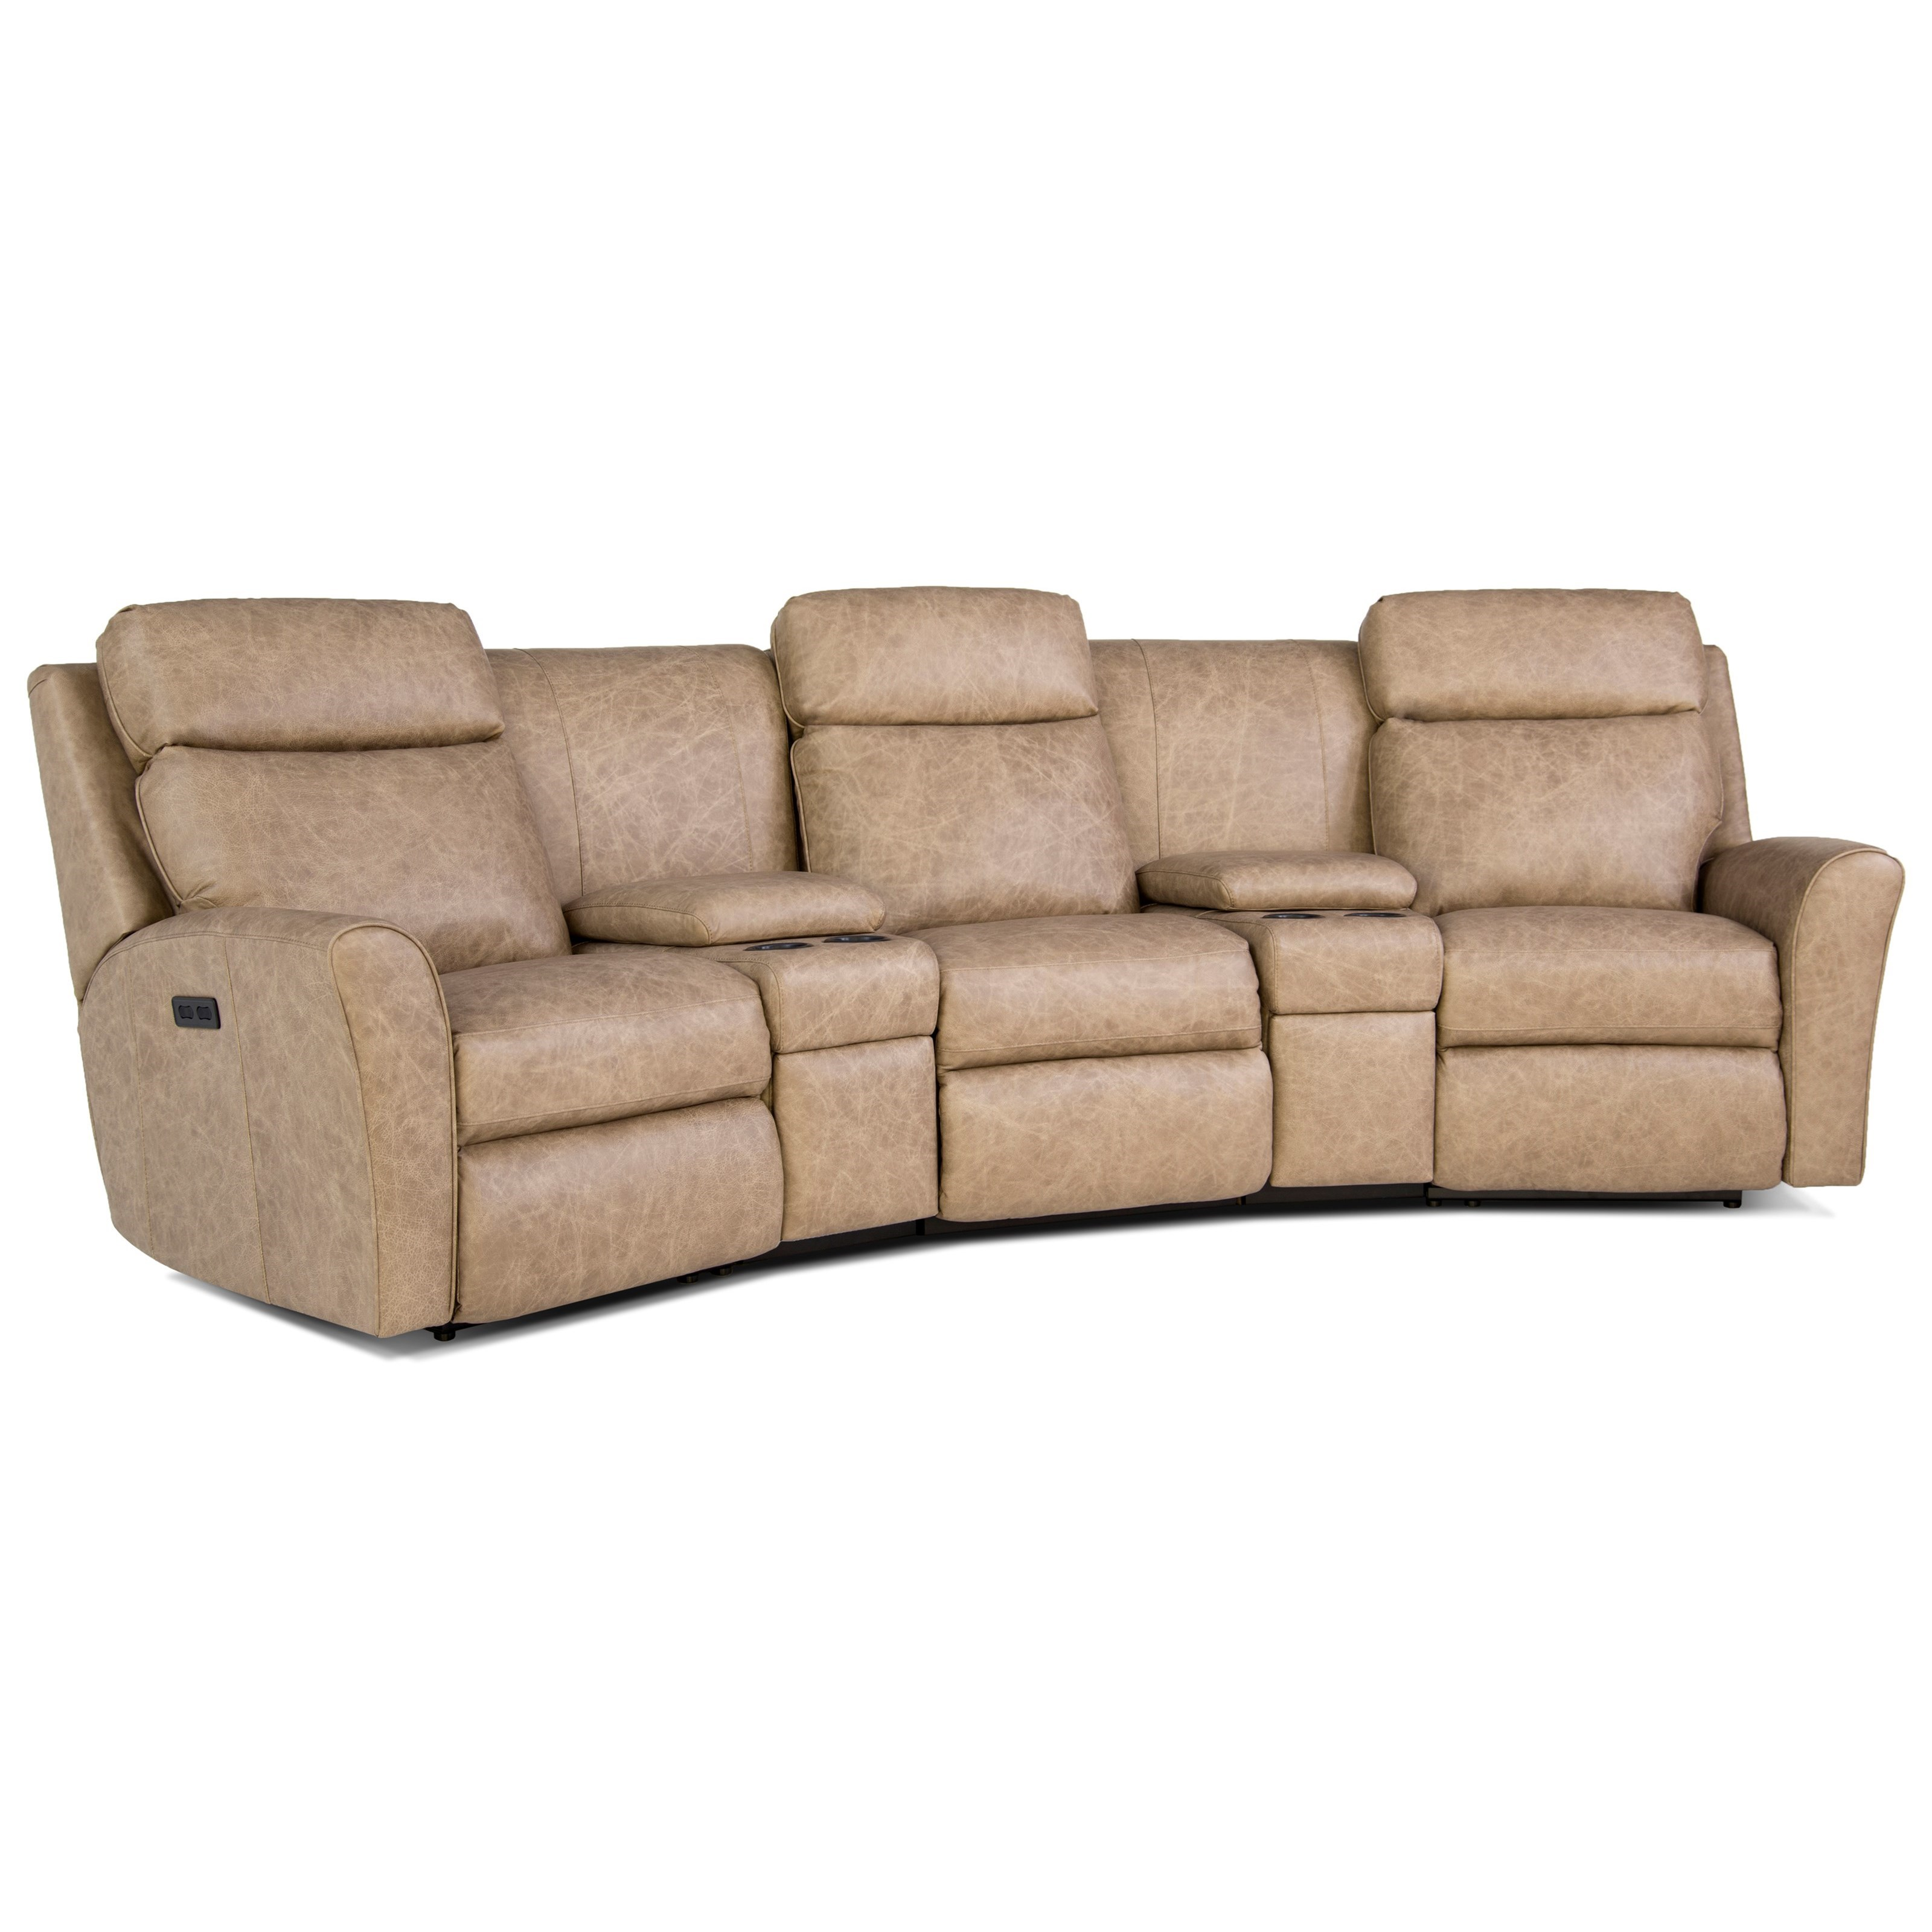 418 Motorized Reclining Conversation Sofa by Smith Brothers at Mueller Furniture